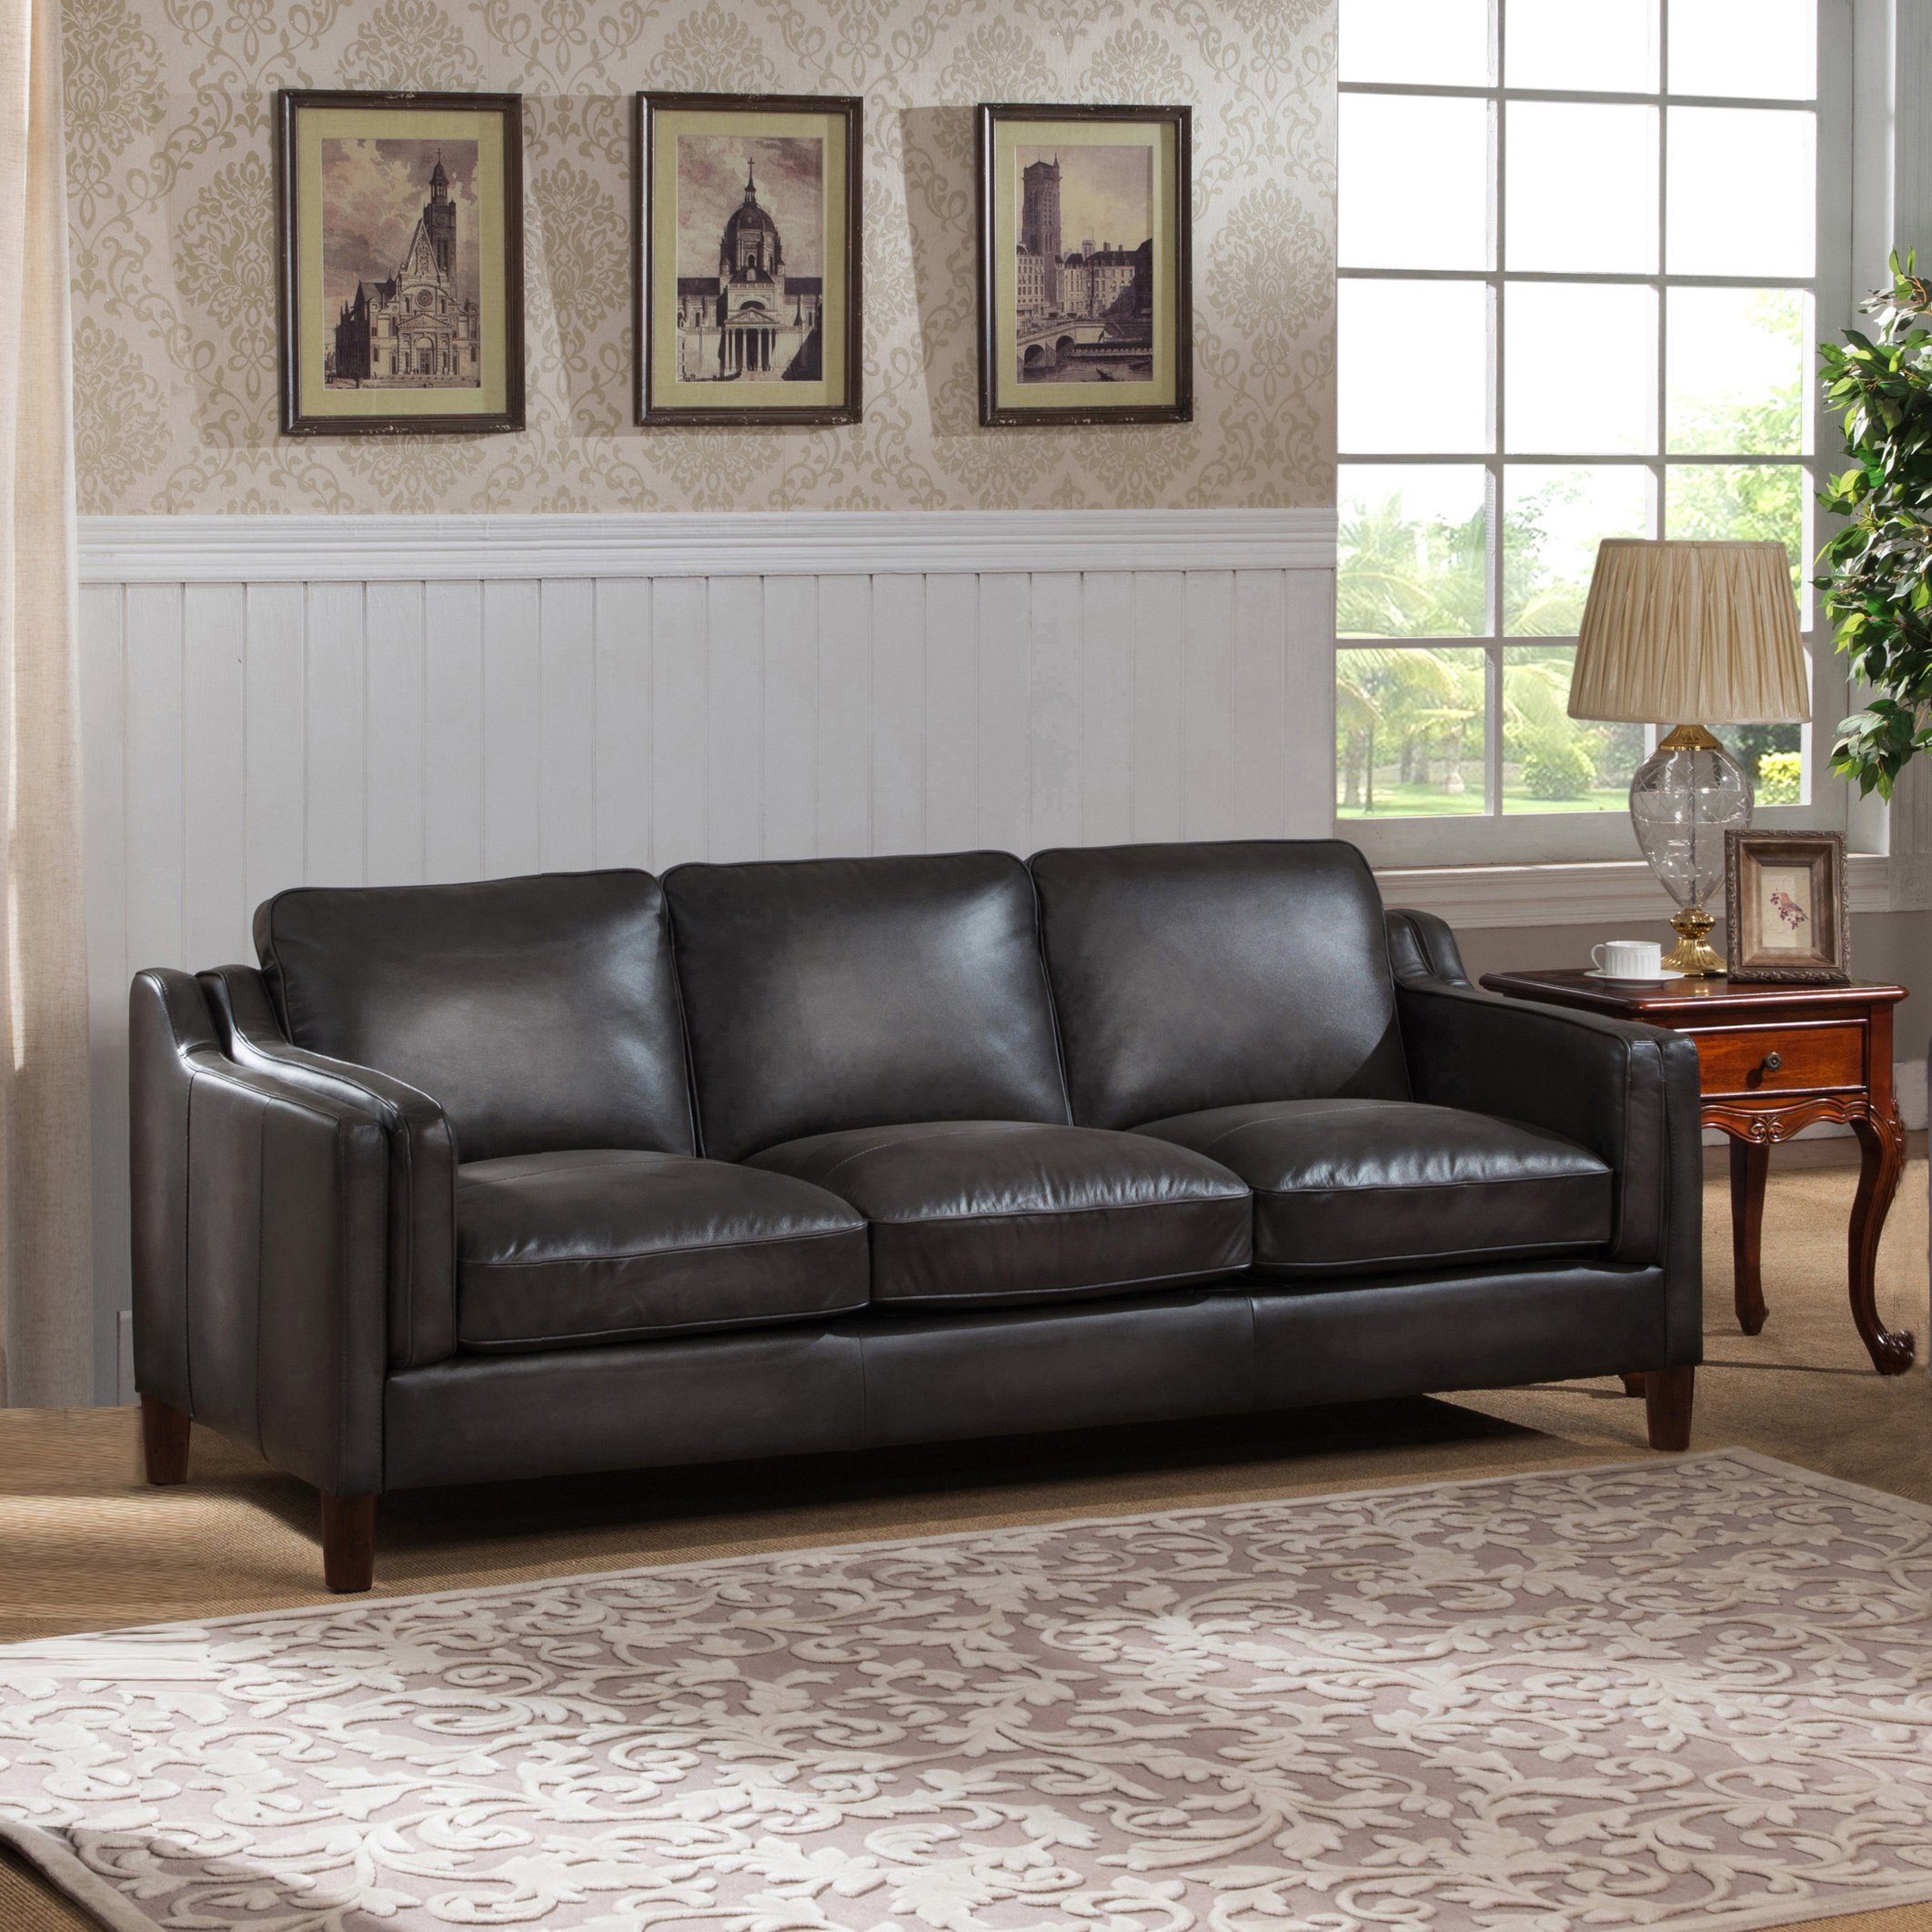 Shop Ames Premium Hand Rubbed Grey Top Grain Leather Sofa And Chair Intended For Ames Arm Sofa Chairs (View 11 of 20)